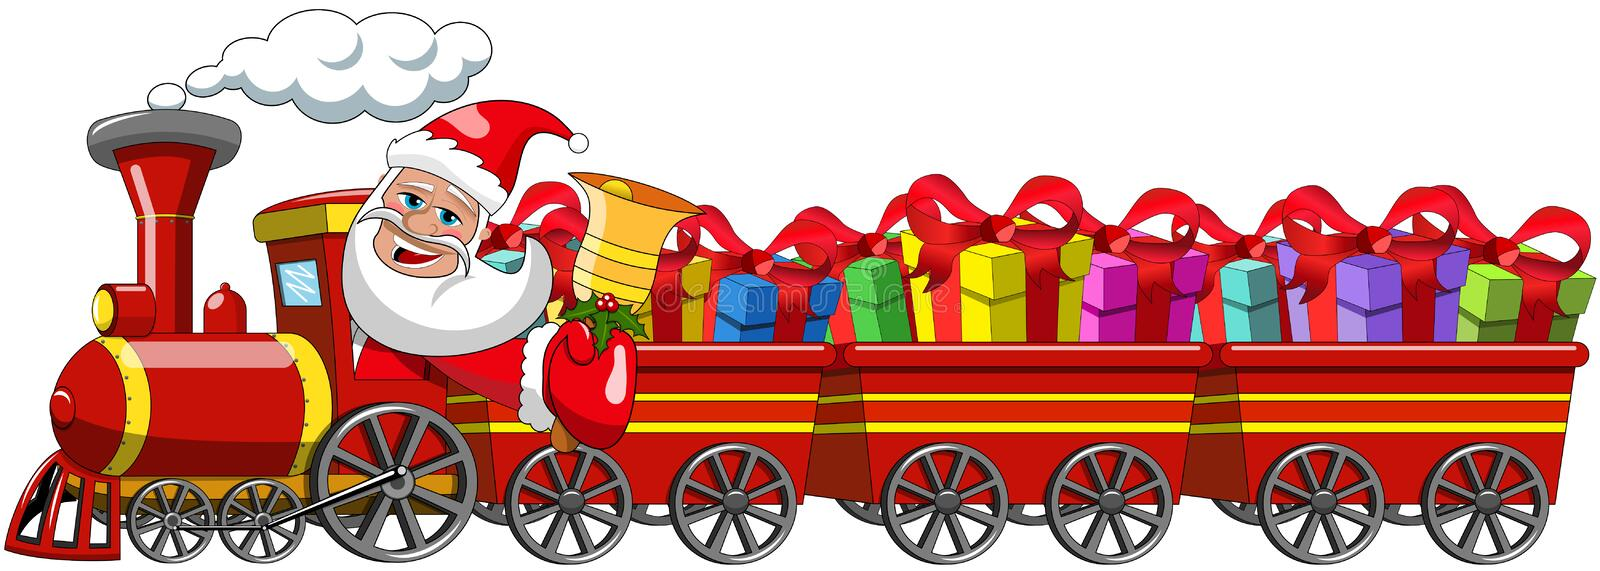 Santa Claus Delivering gifts driving steam locomotive wagons royalty free illustration